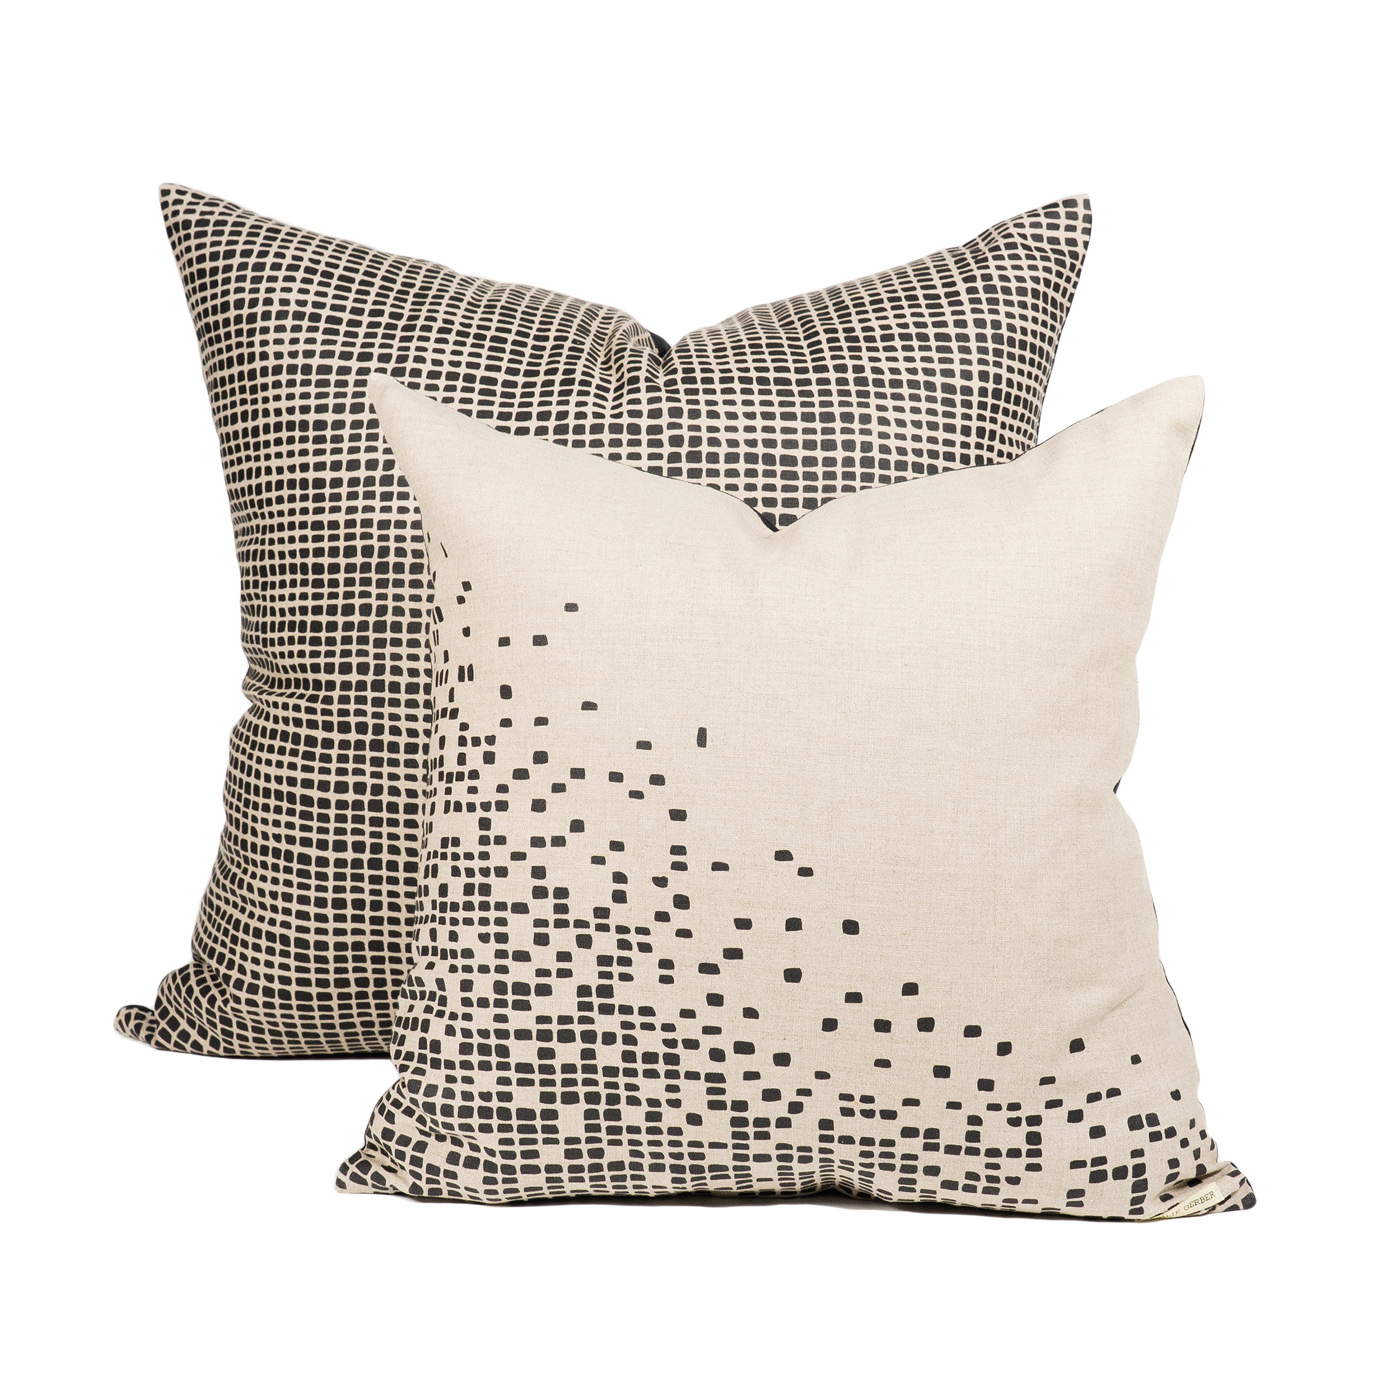 Natalie Gerber_Cushion Set_2015